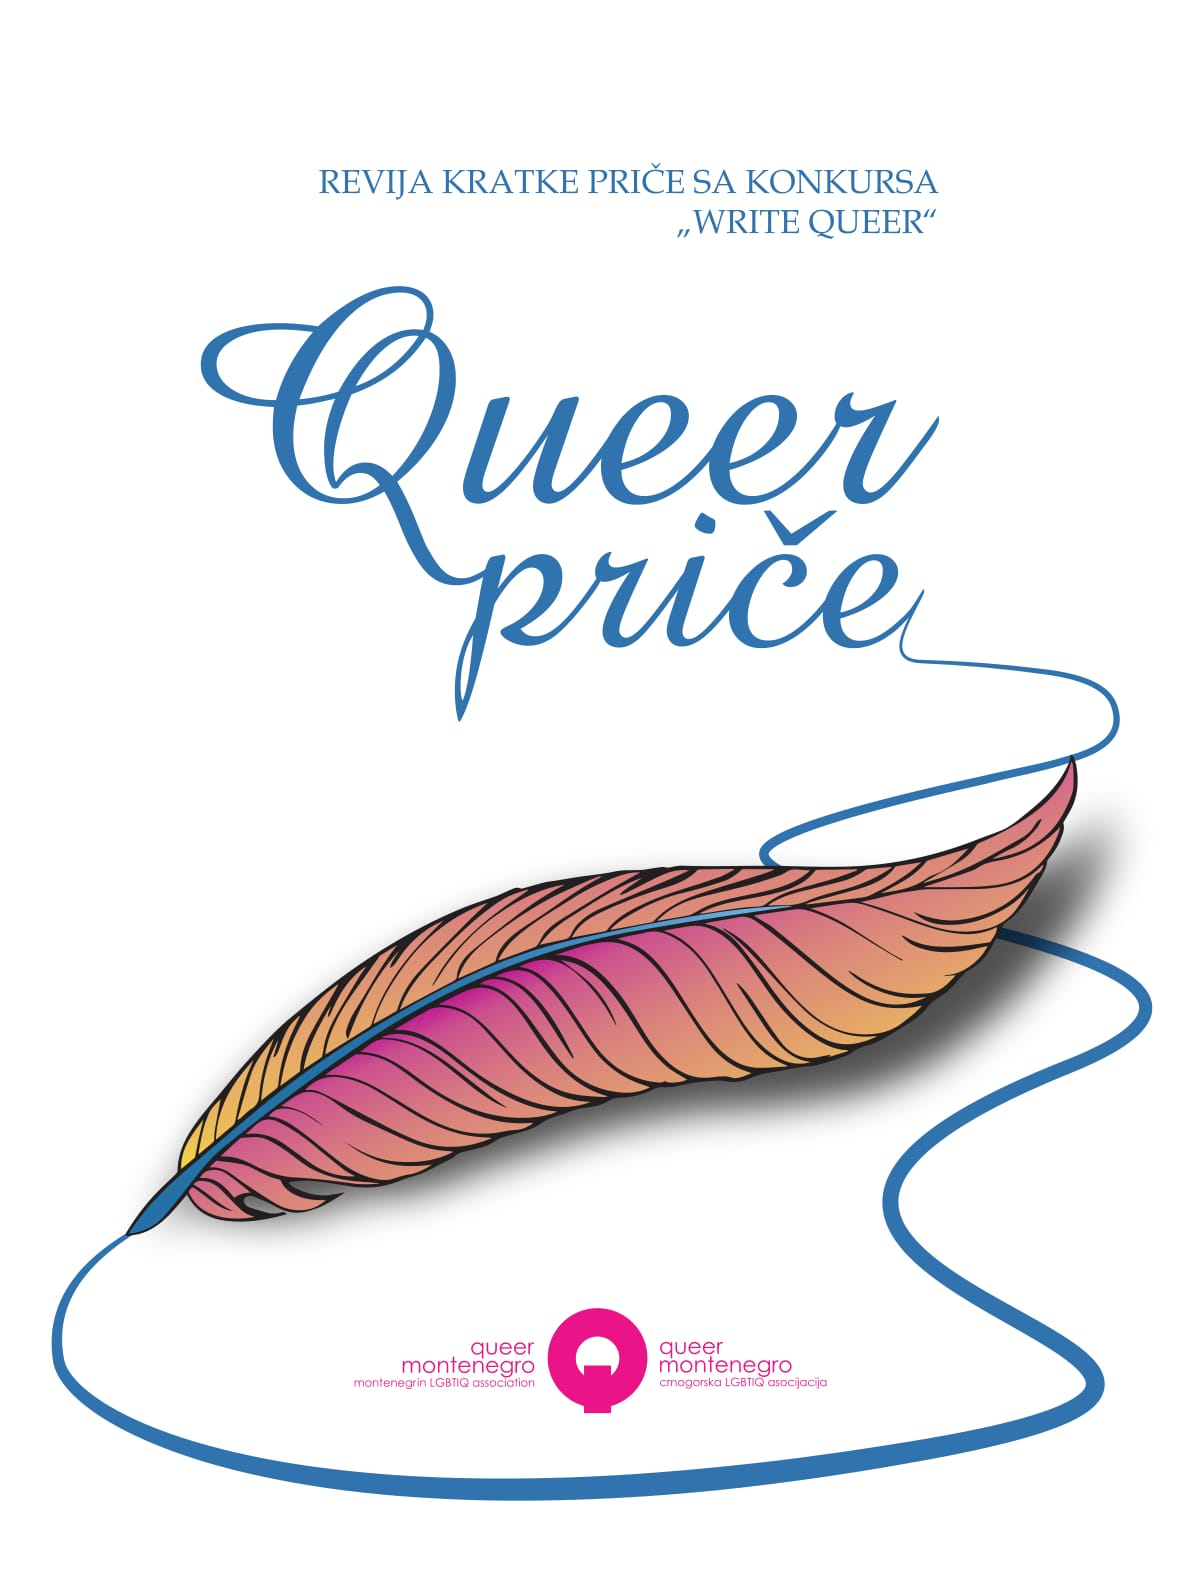 Queer price